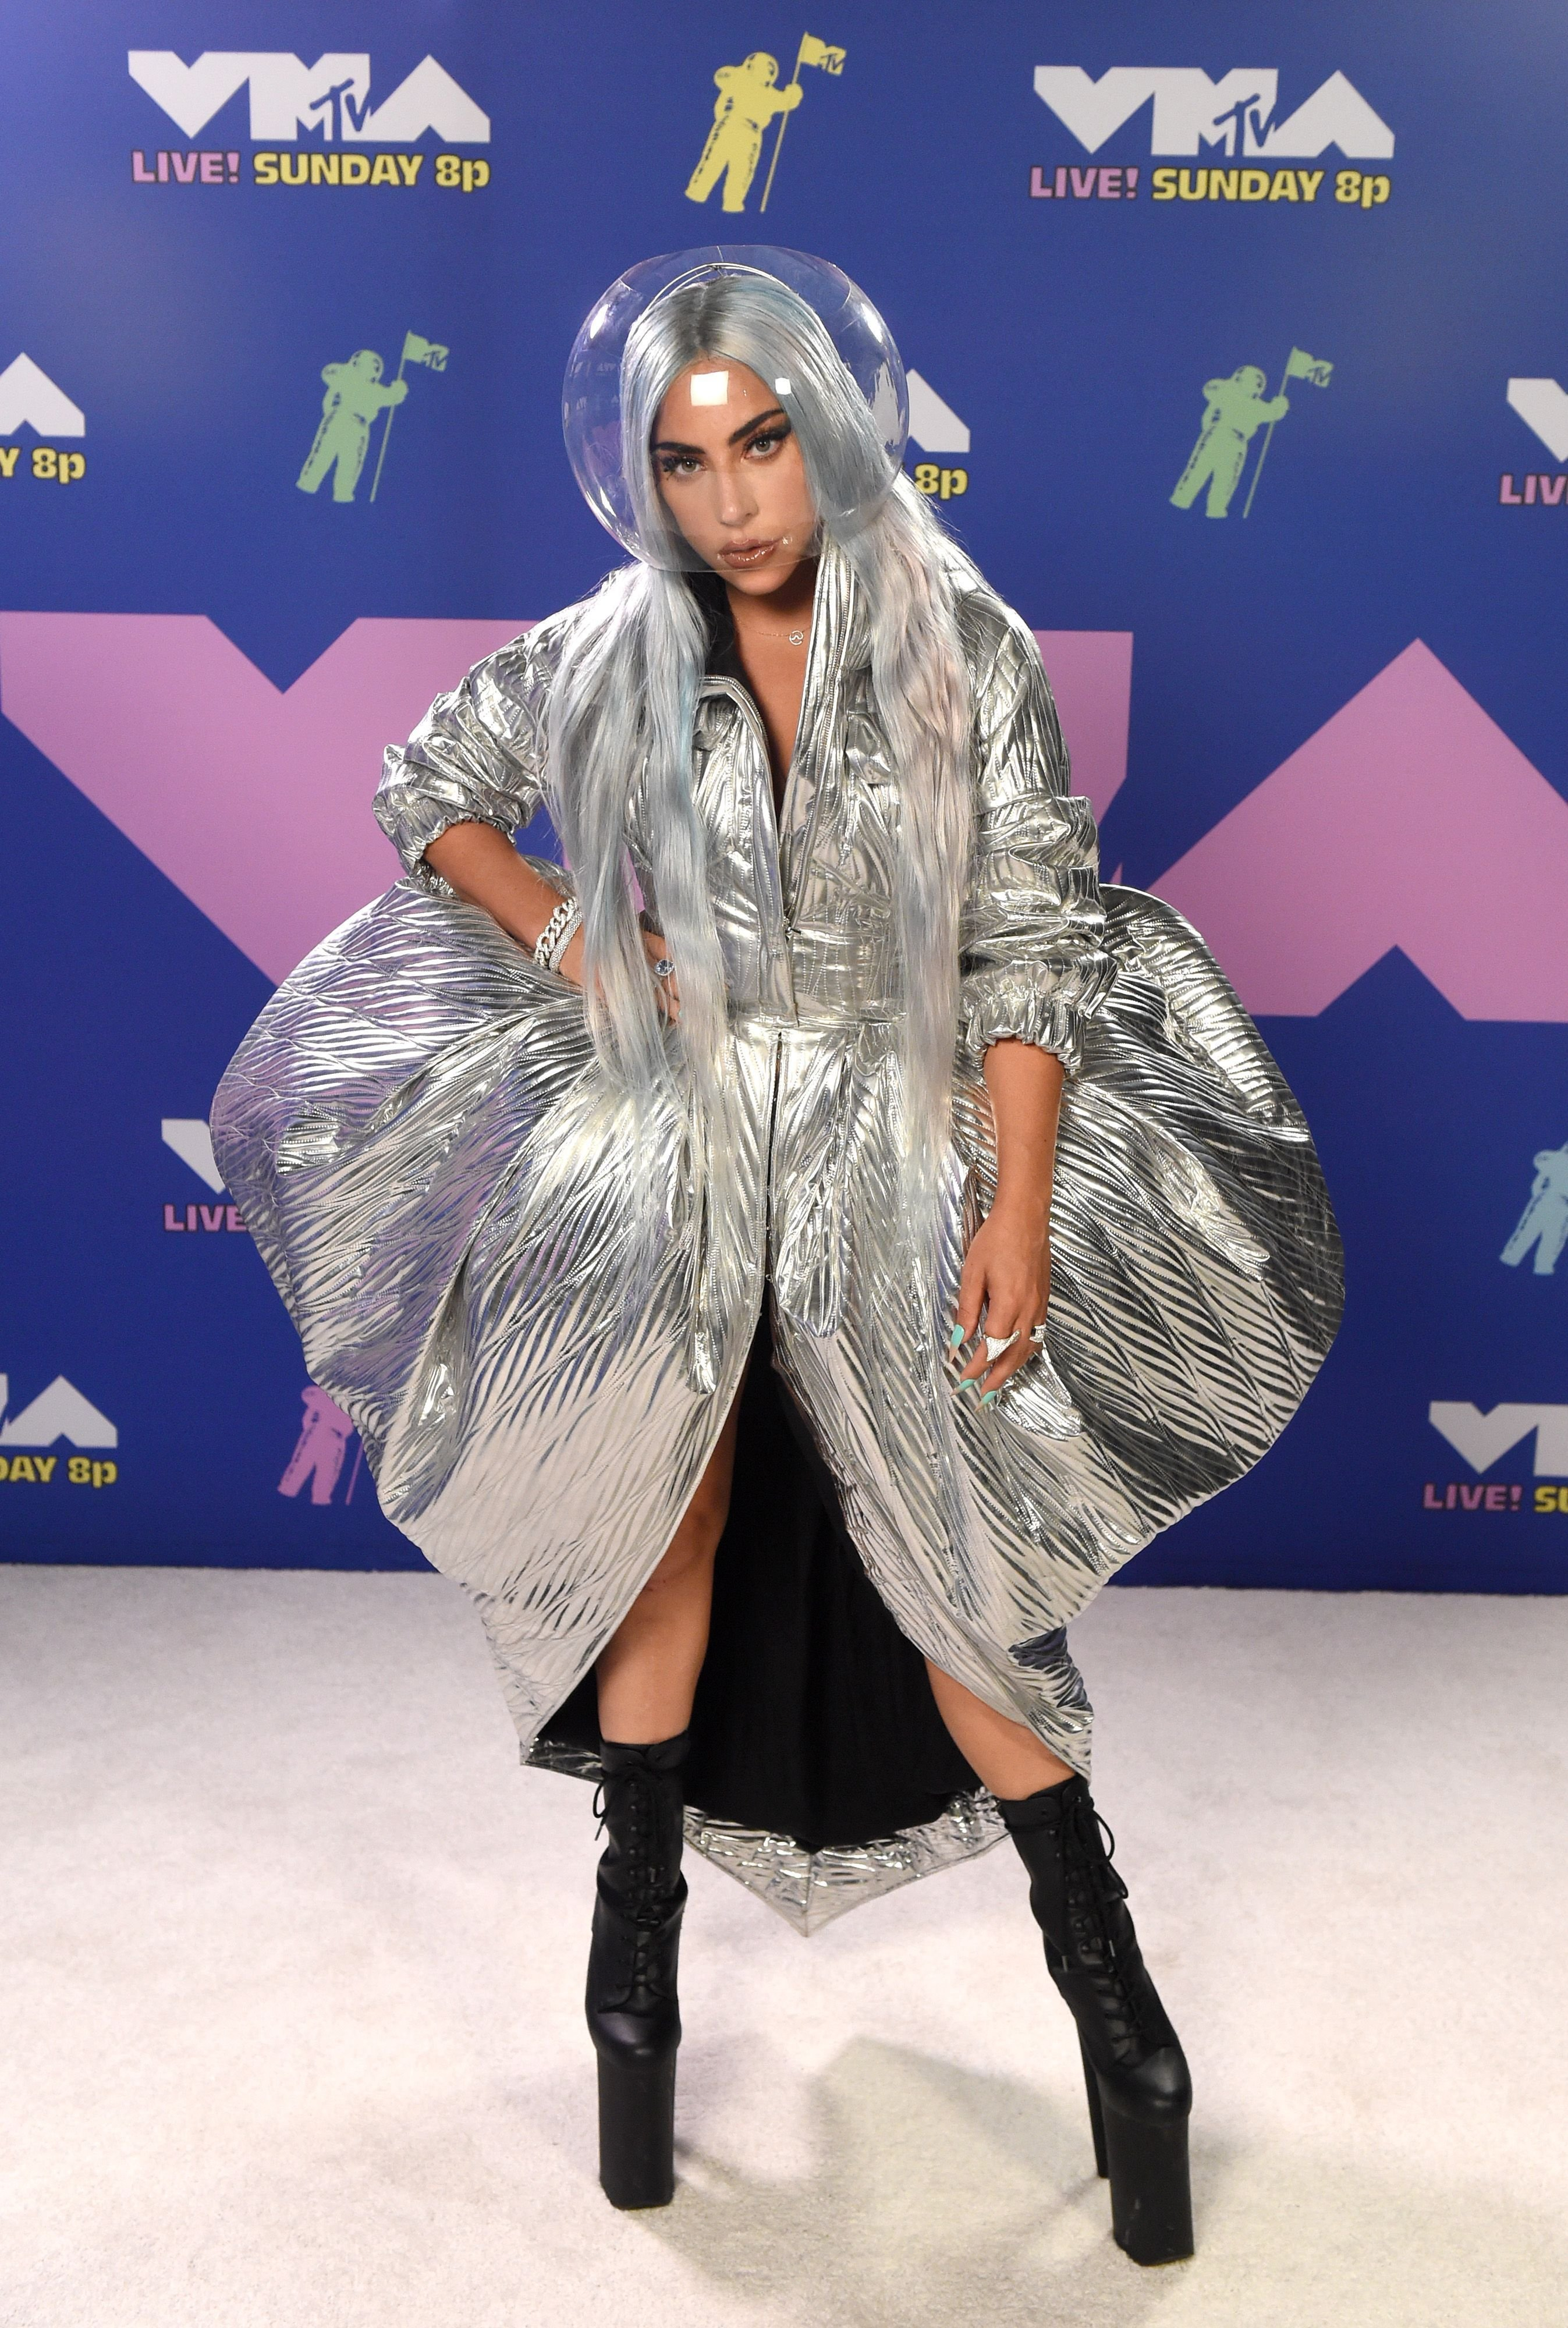 Lady Gaga at the 2020 MTV Video Music Awards on August 30th 2020   Getty Images